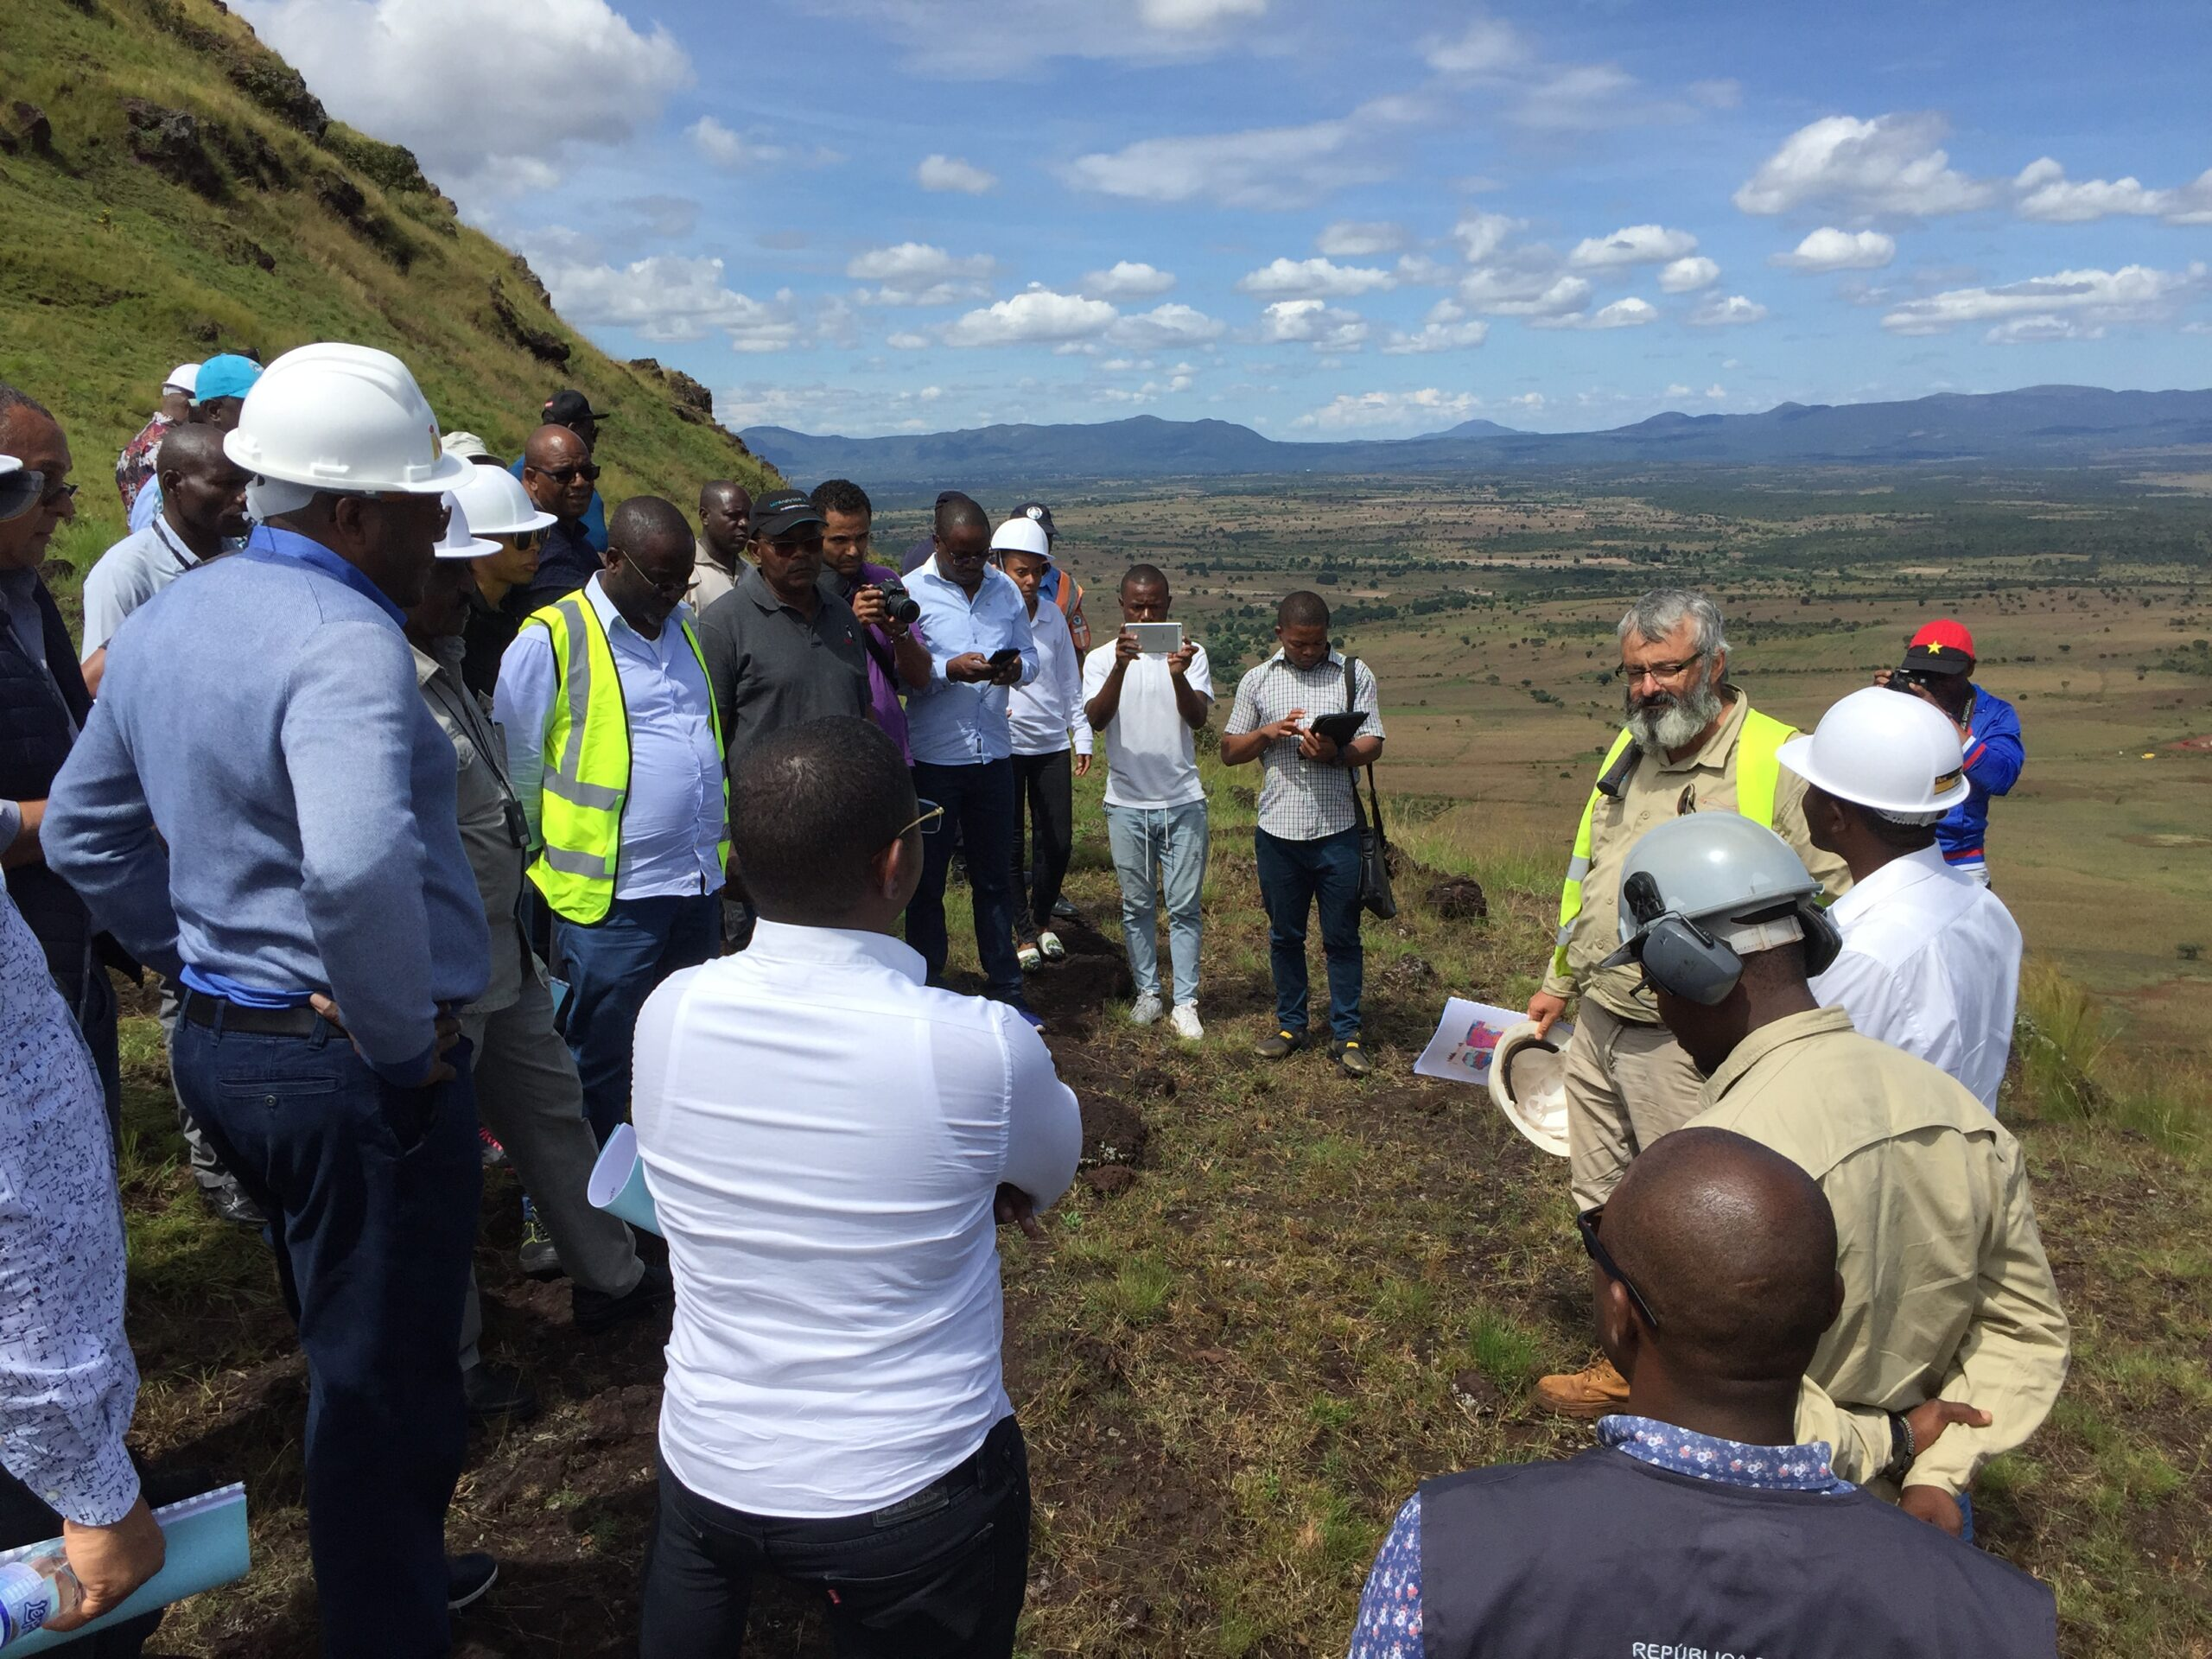 COO Dave Hammond discusses the project with Ministry and Local officials - Feb 2019